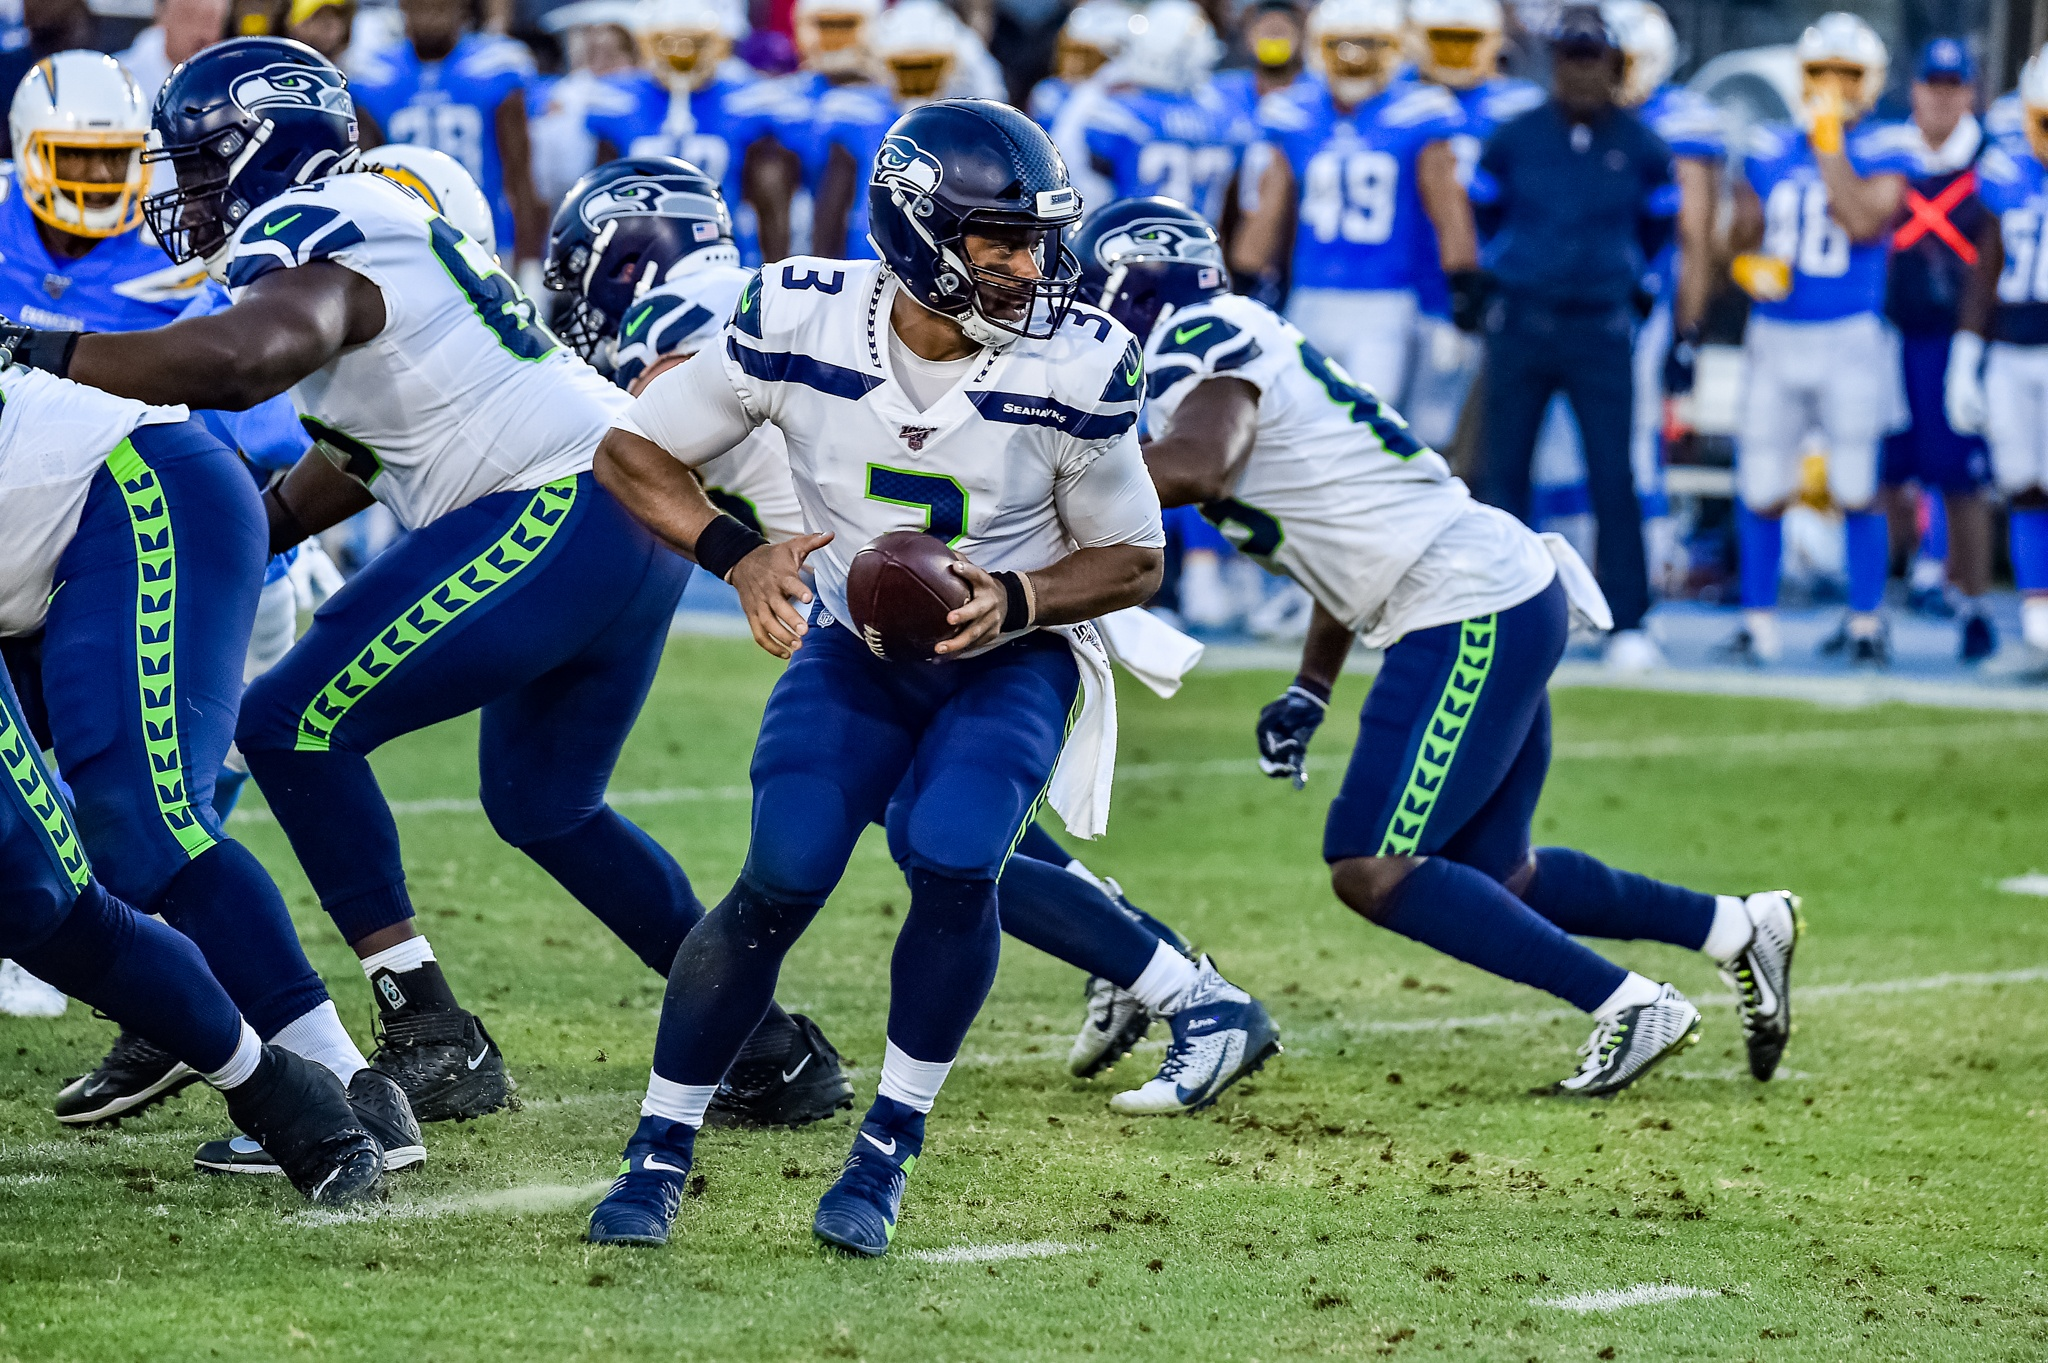 © Mark Hammond/News4usonline - Aug. 24, 2019 - Seahawks vs. Chargers - Seattle Seahawks quarterback Russell Wilson (3) in the pocket.